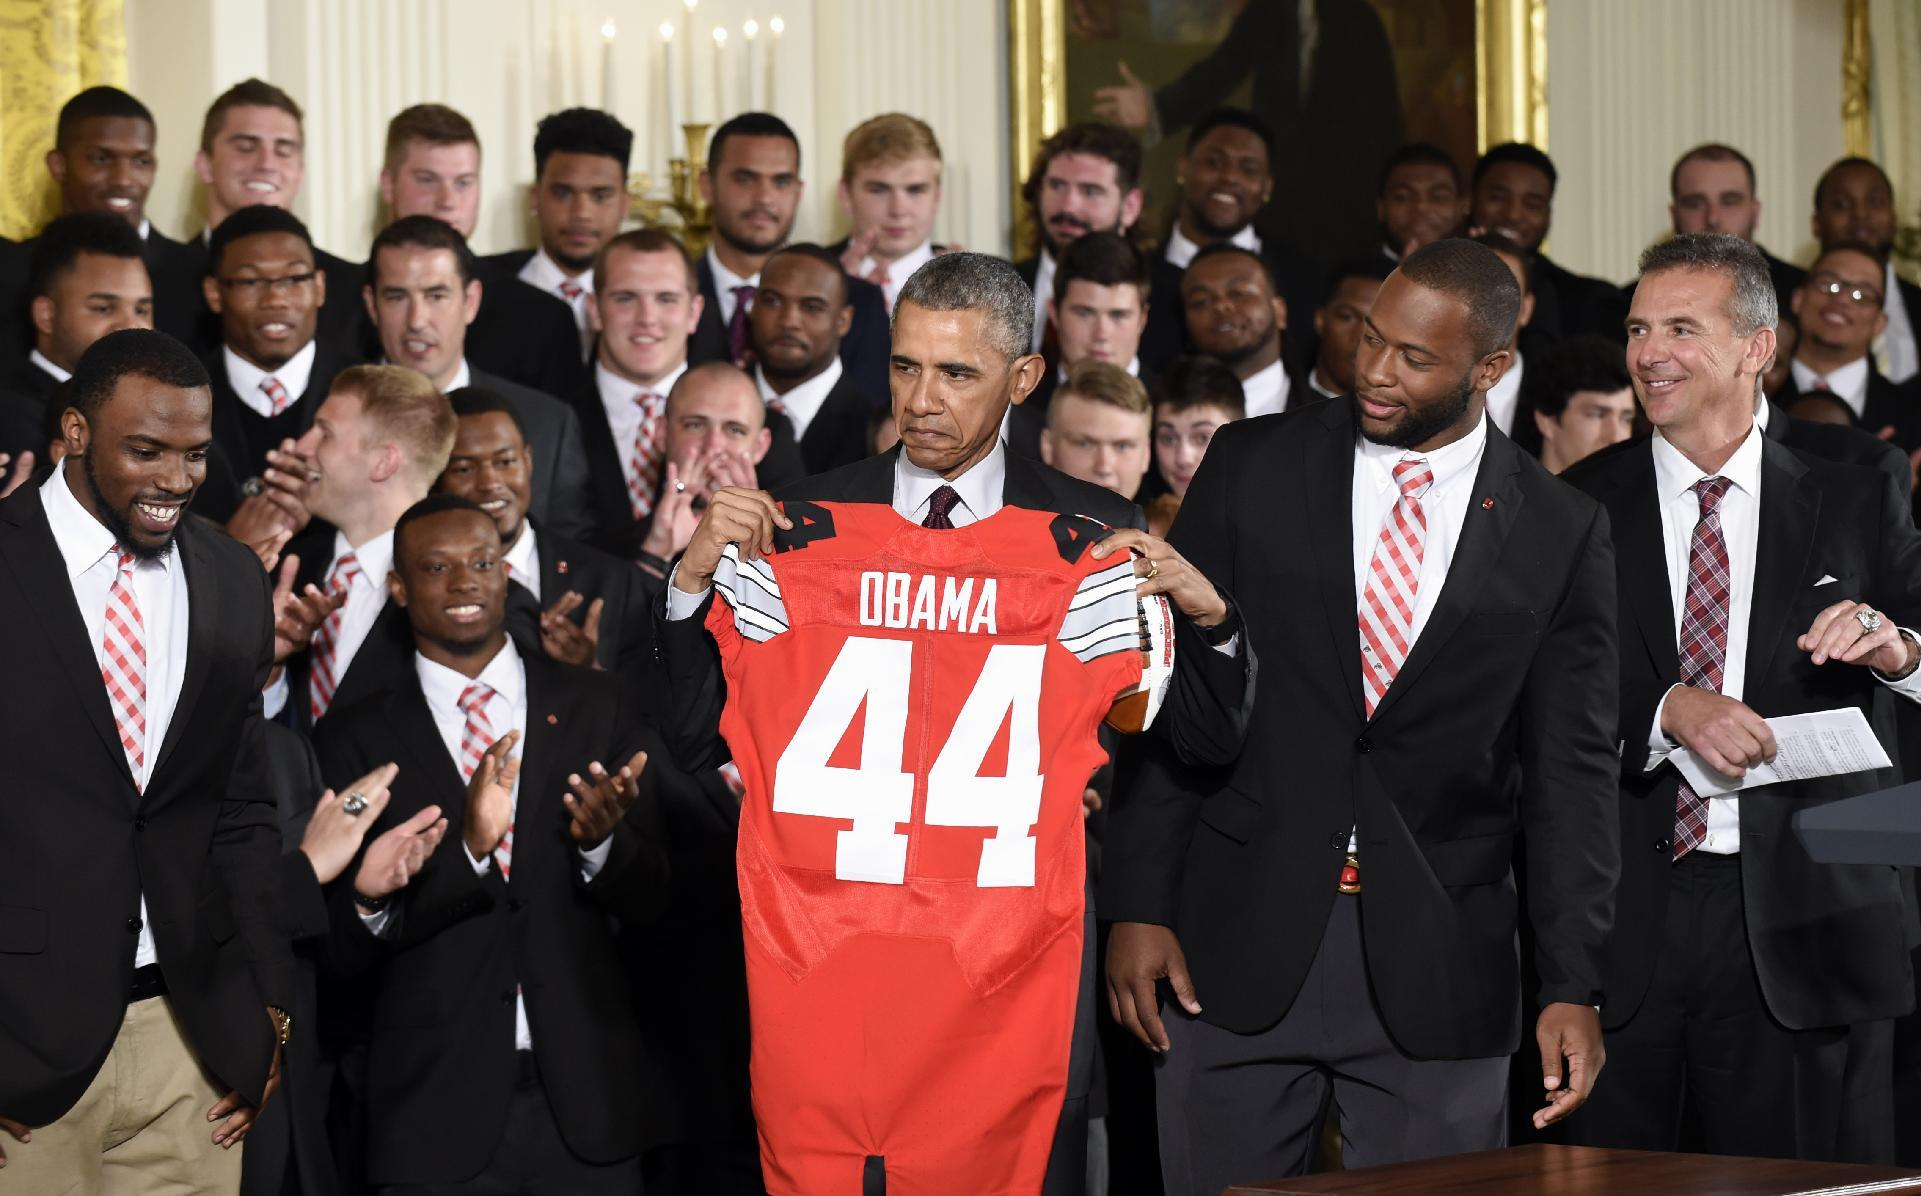 President Barack Obama holds up a Ohio State football jersey that he was presented with from Ohio State football players Curtis Grant and Doran Grant, as head coach Urban Meyer watches at right. (AP Photo/Susan Walsh)